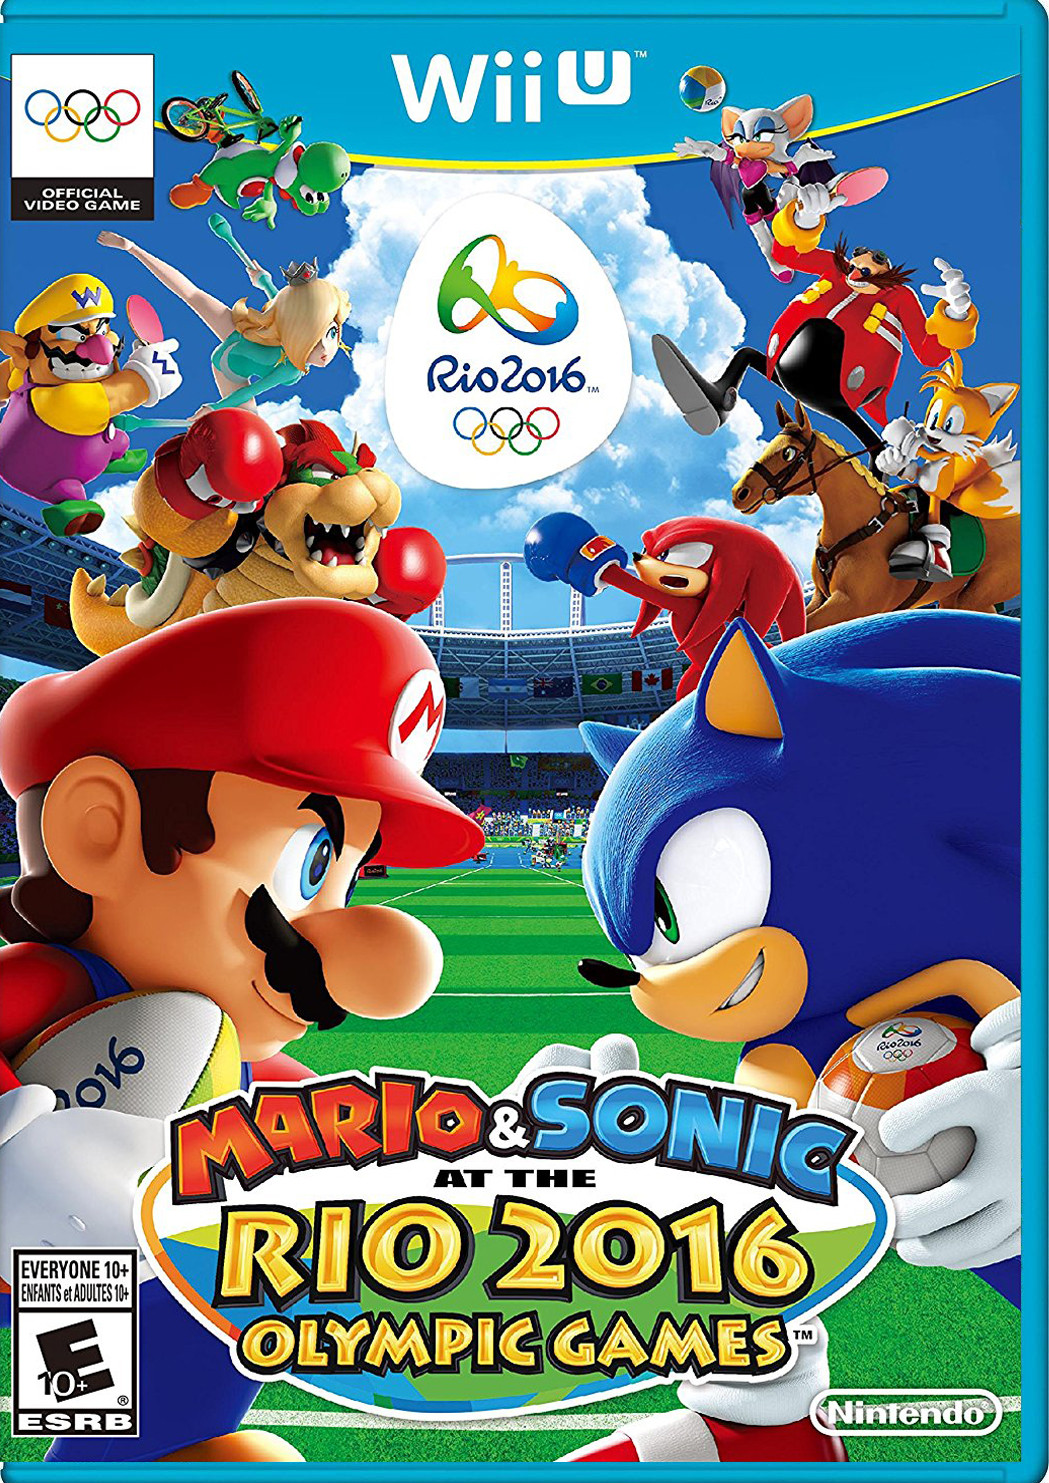 MARIO AND SONIC AT RIO 2016 WIIU